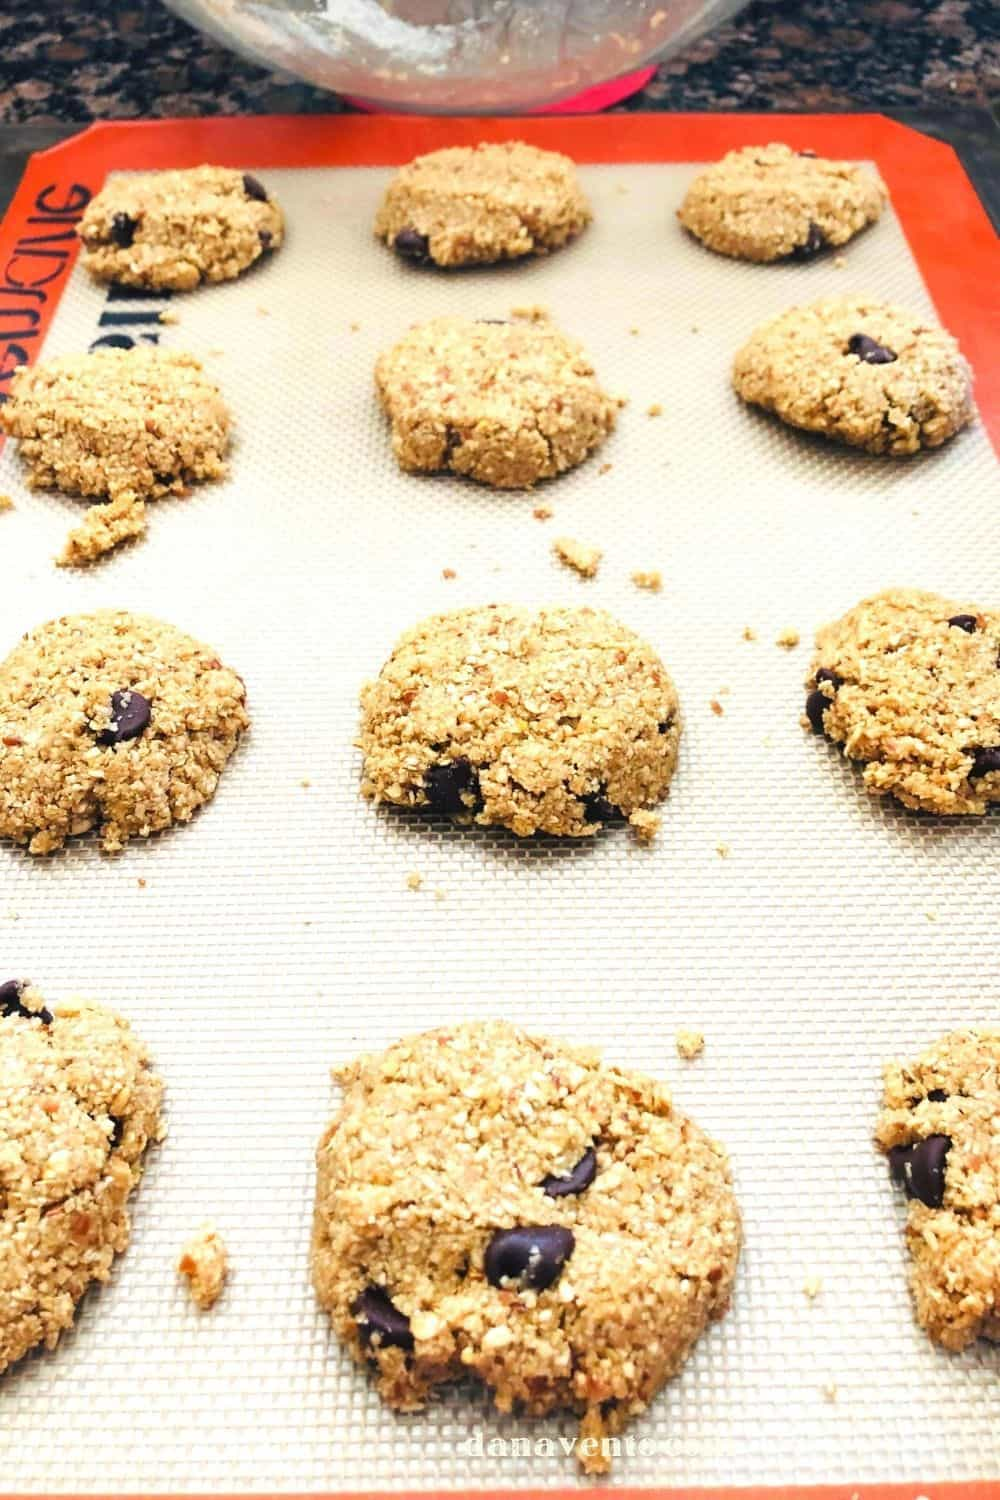 After scooping onto tray no bake chocolate chip cookies